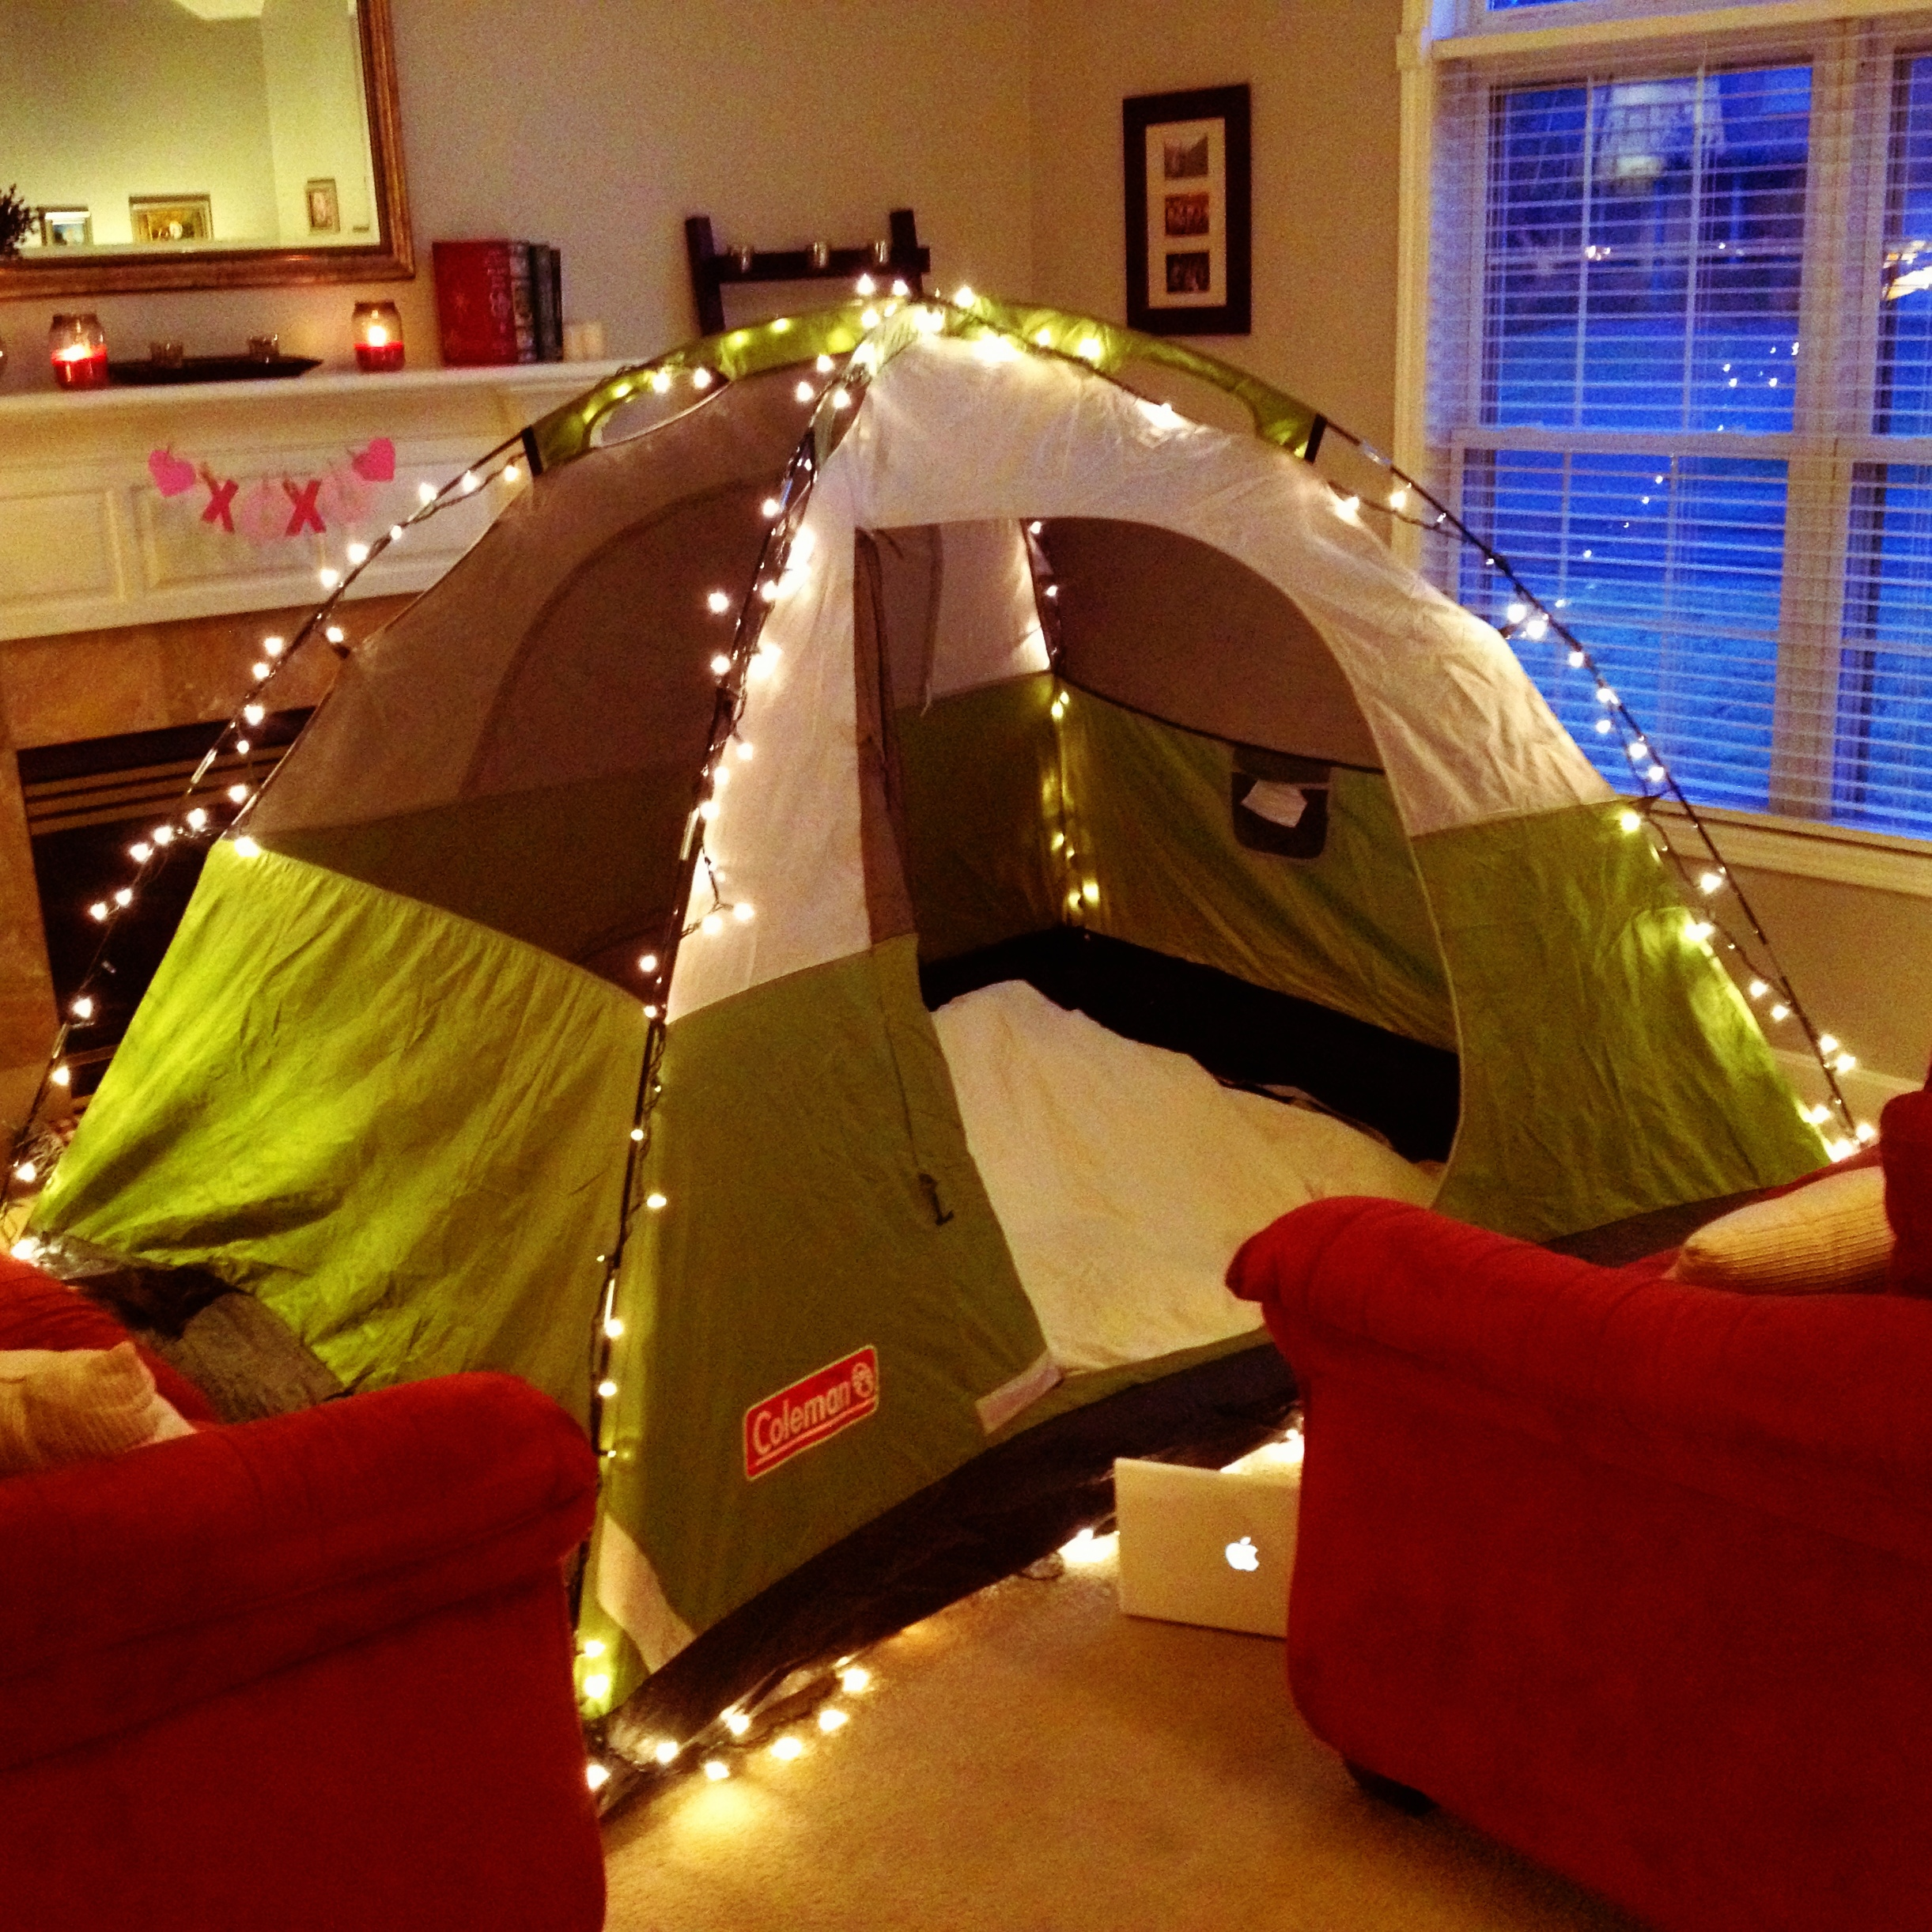 An Indoor Camping Date Is A Creative Valentineu0027s Day Date Idea!